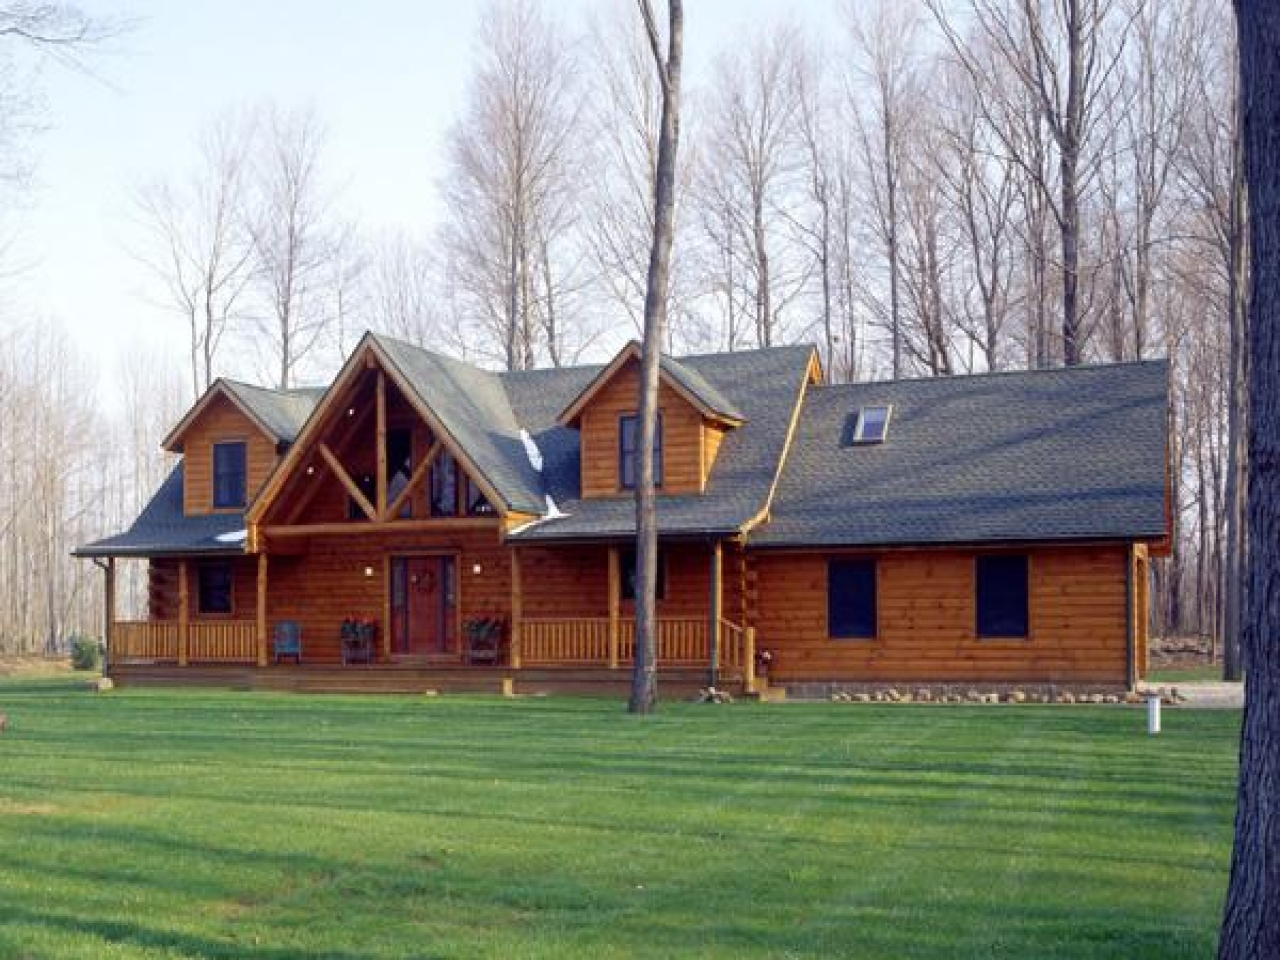 Log cabin homes inside log cabin homes for sale in ohio for Log cabin builders in california